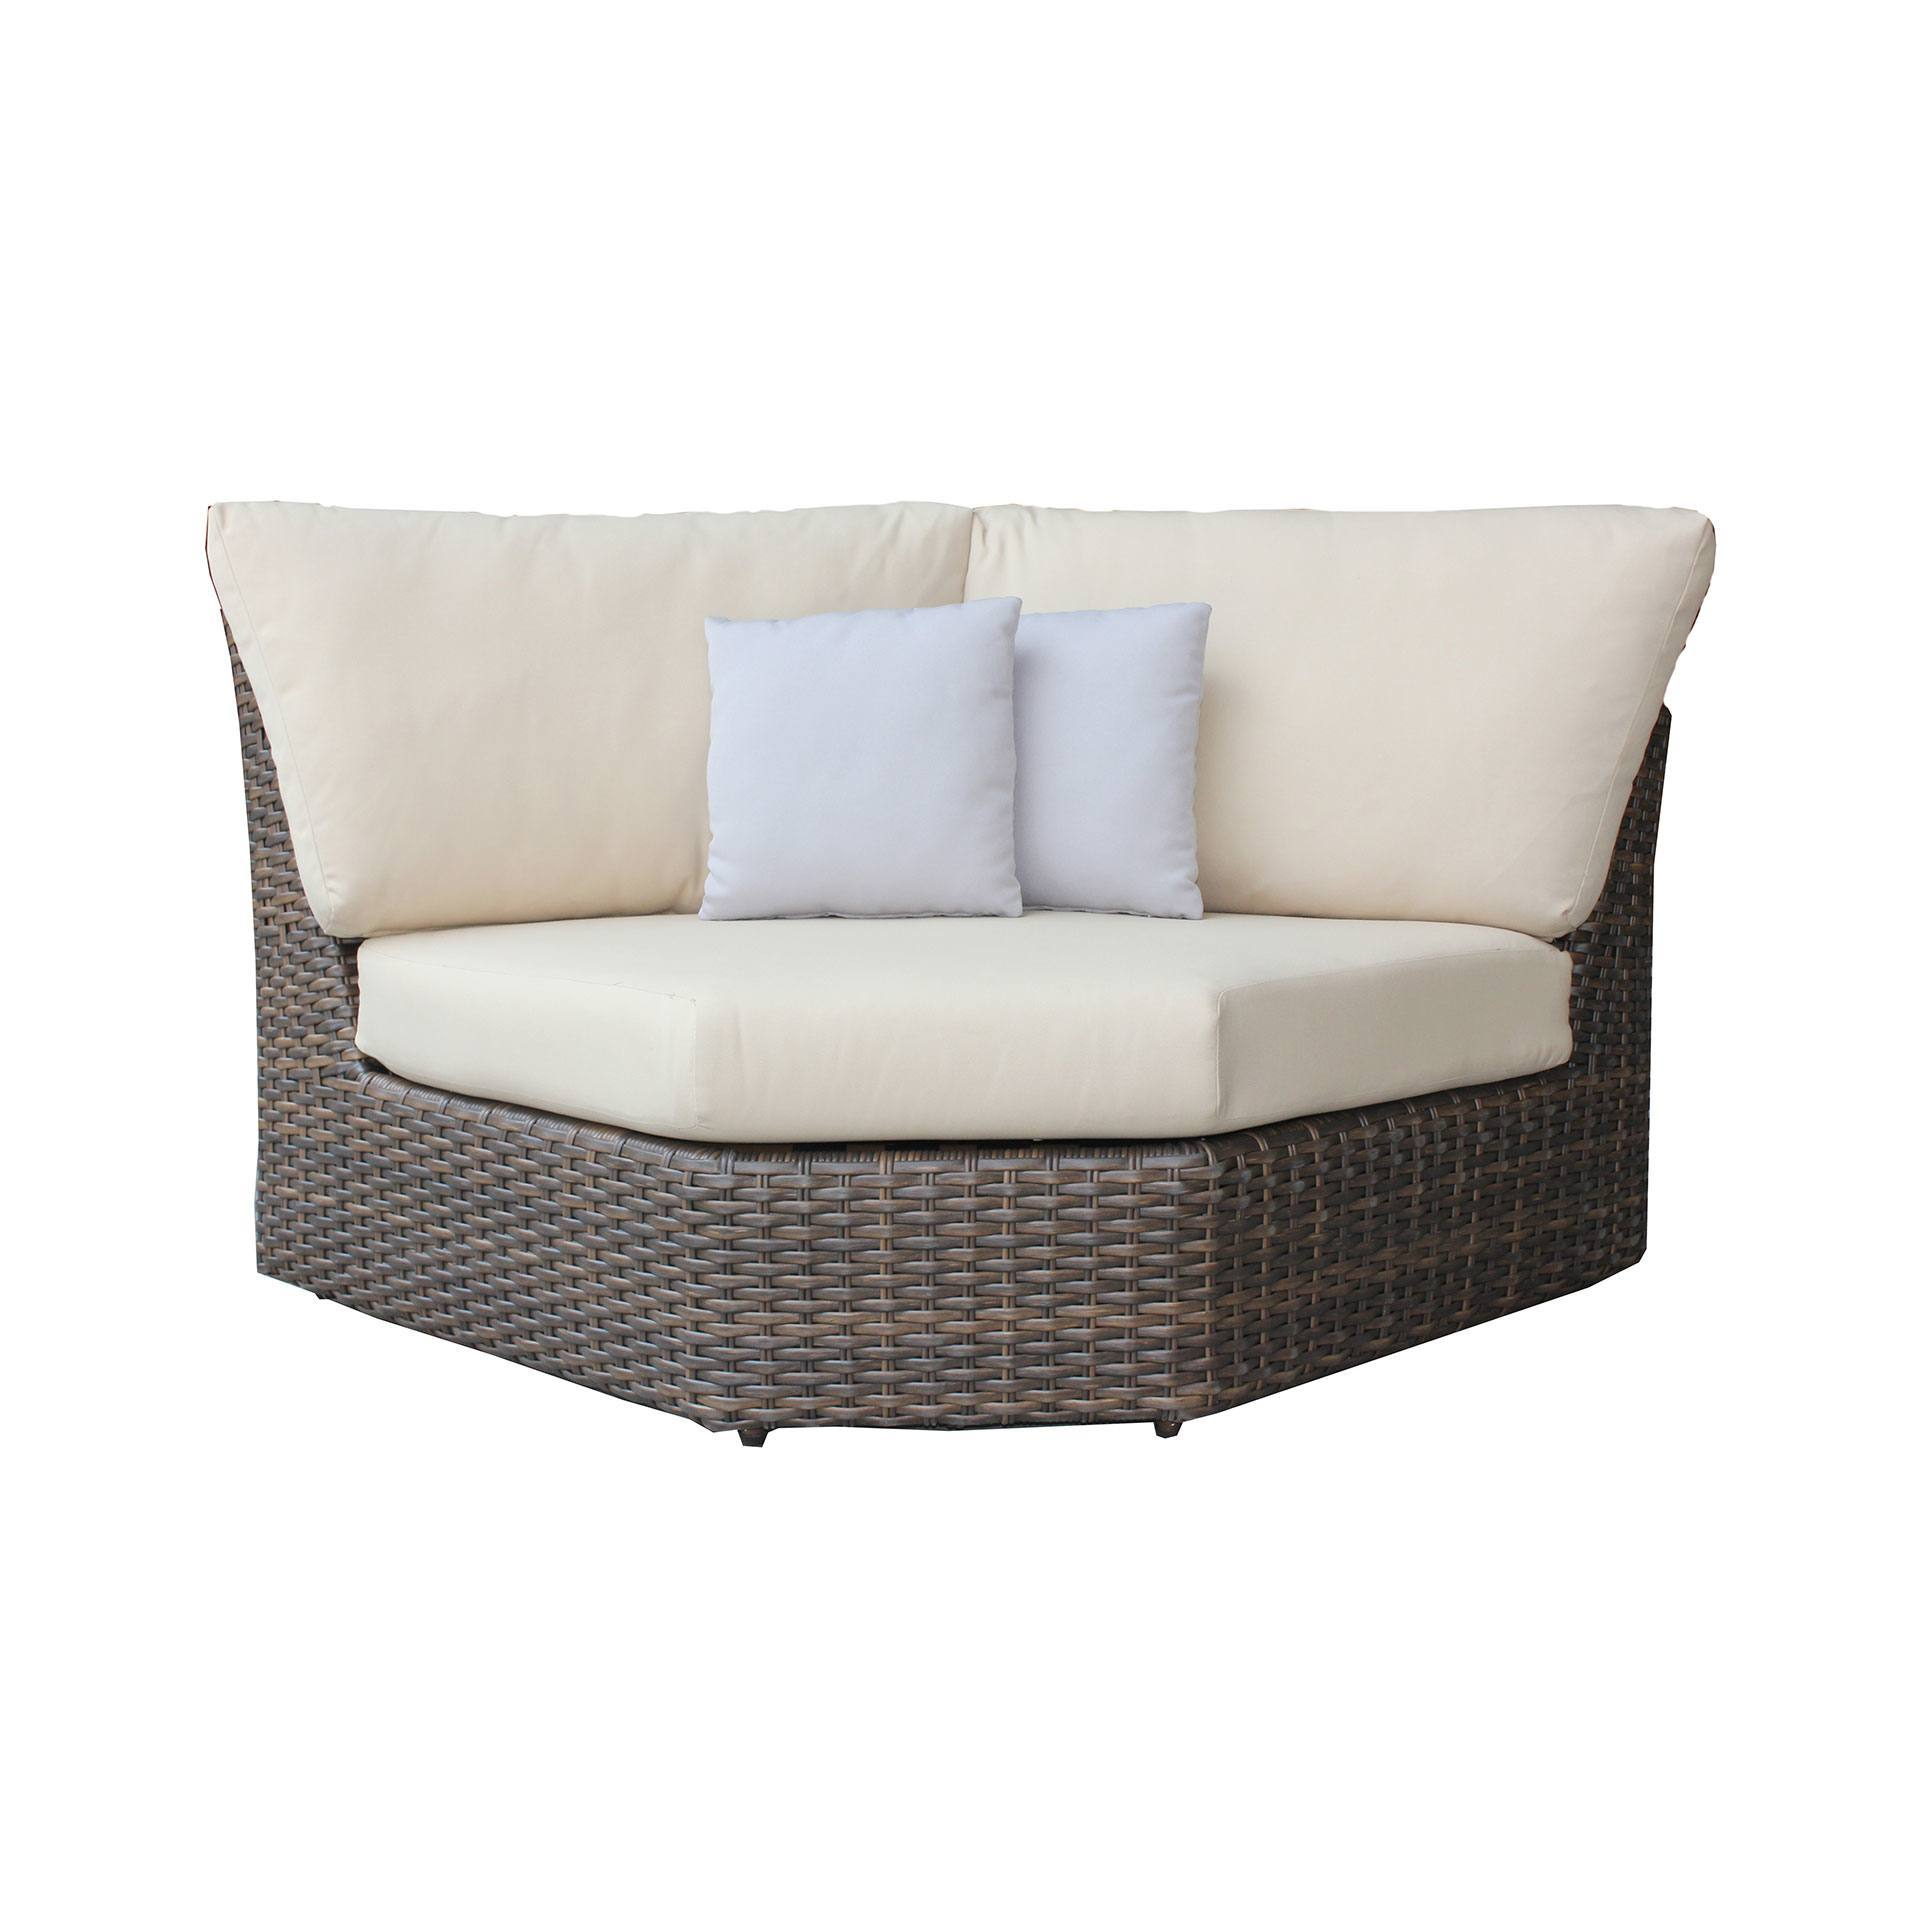 patio furniture covers for sectional sofas air sofa online ratana portfino curved corner chair - leisure living